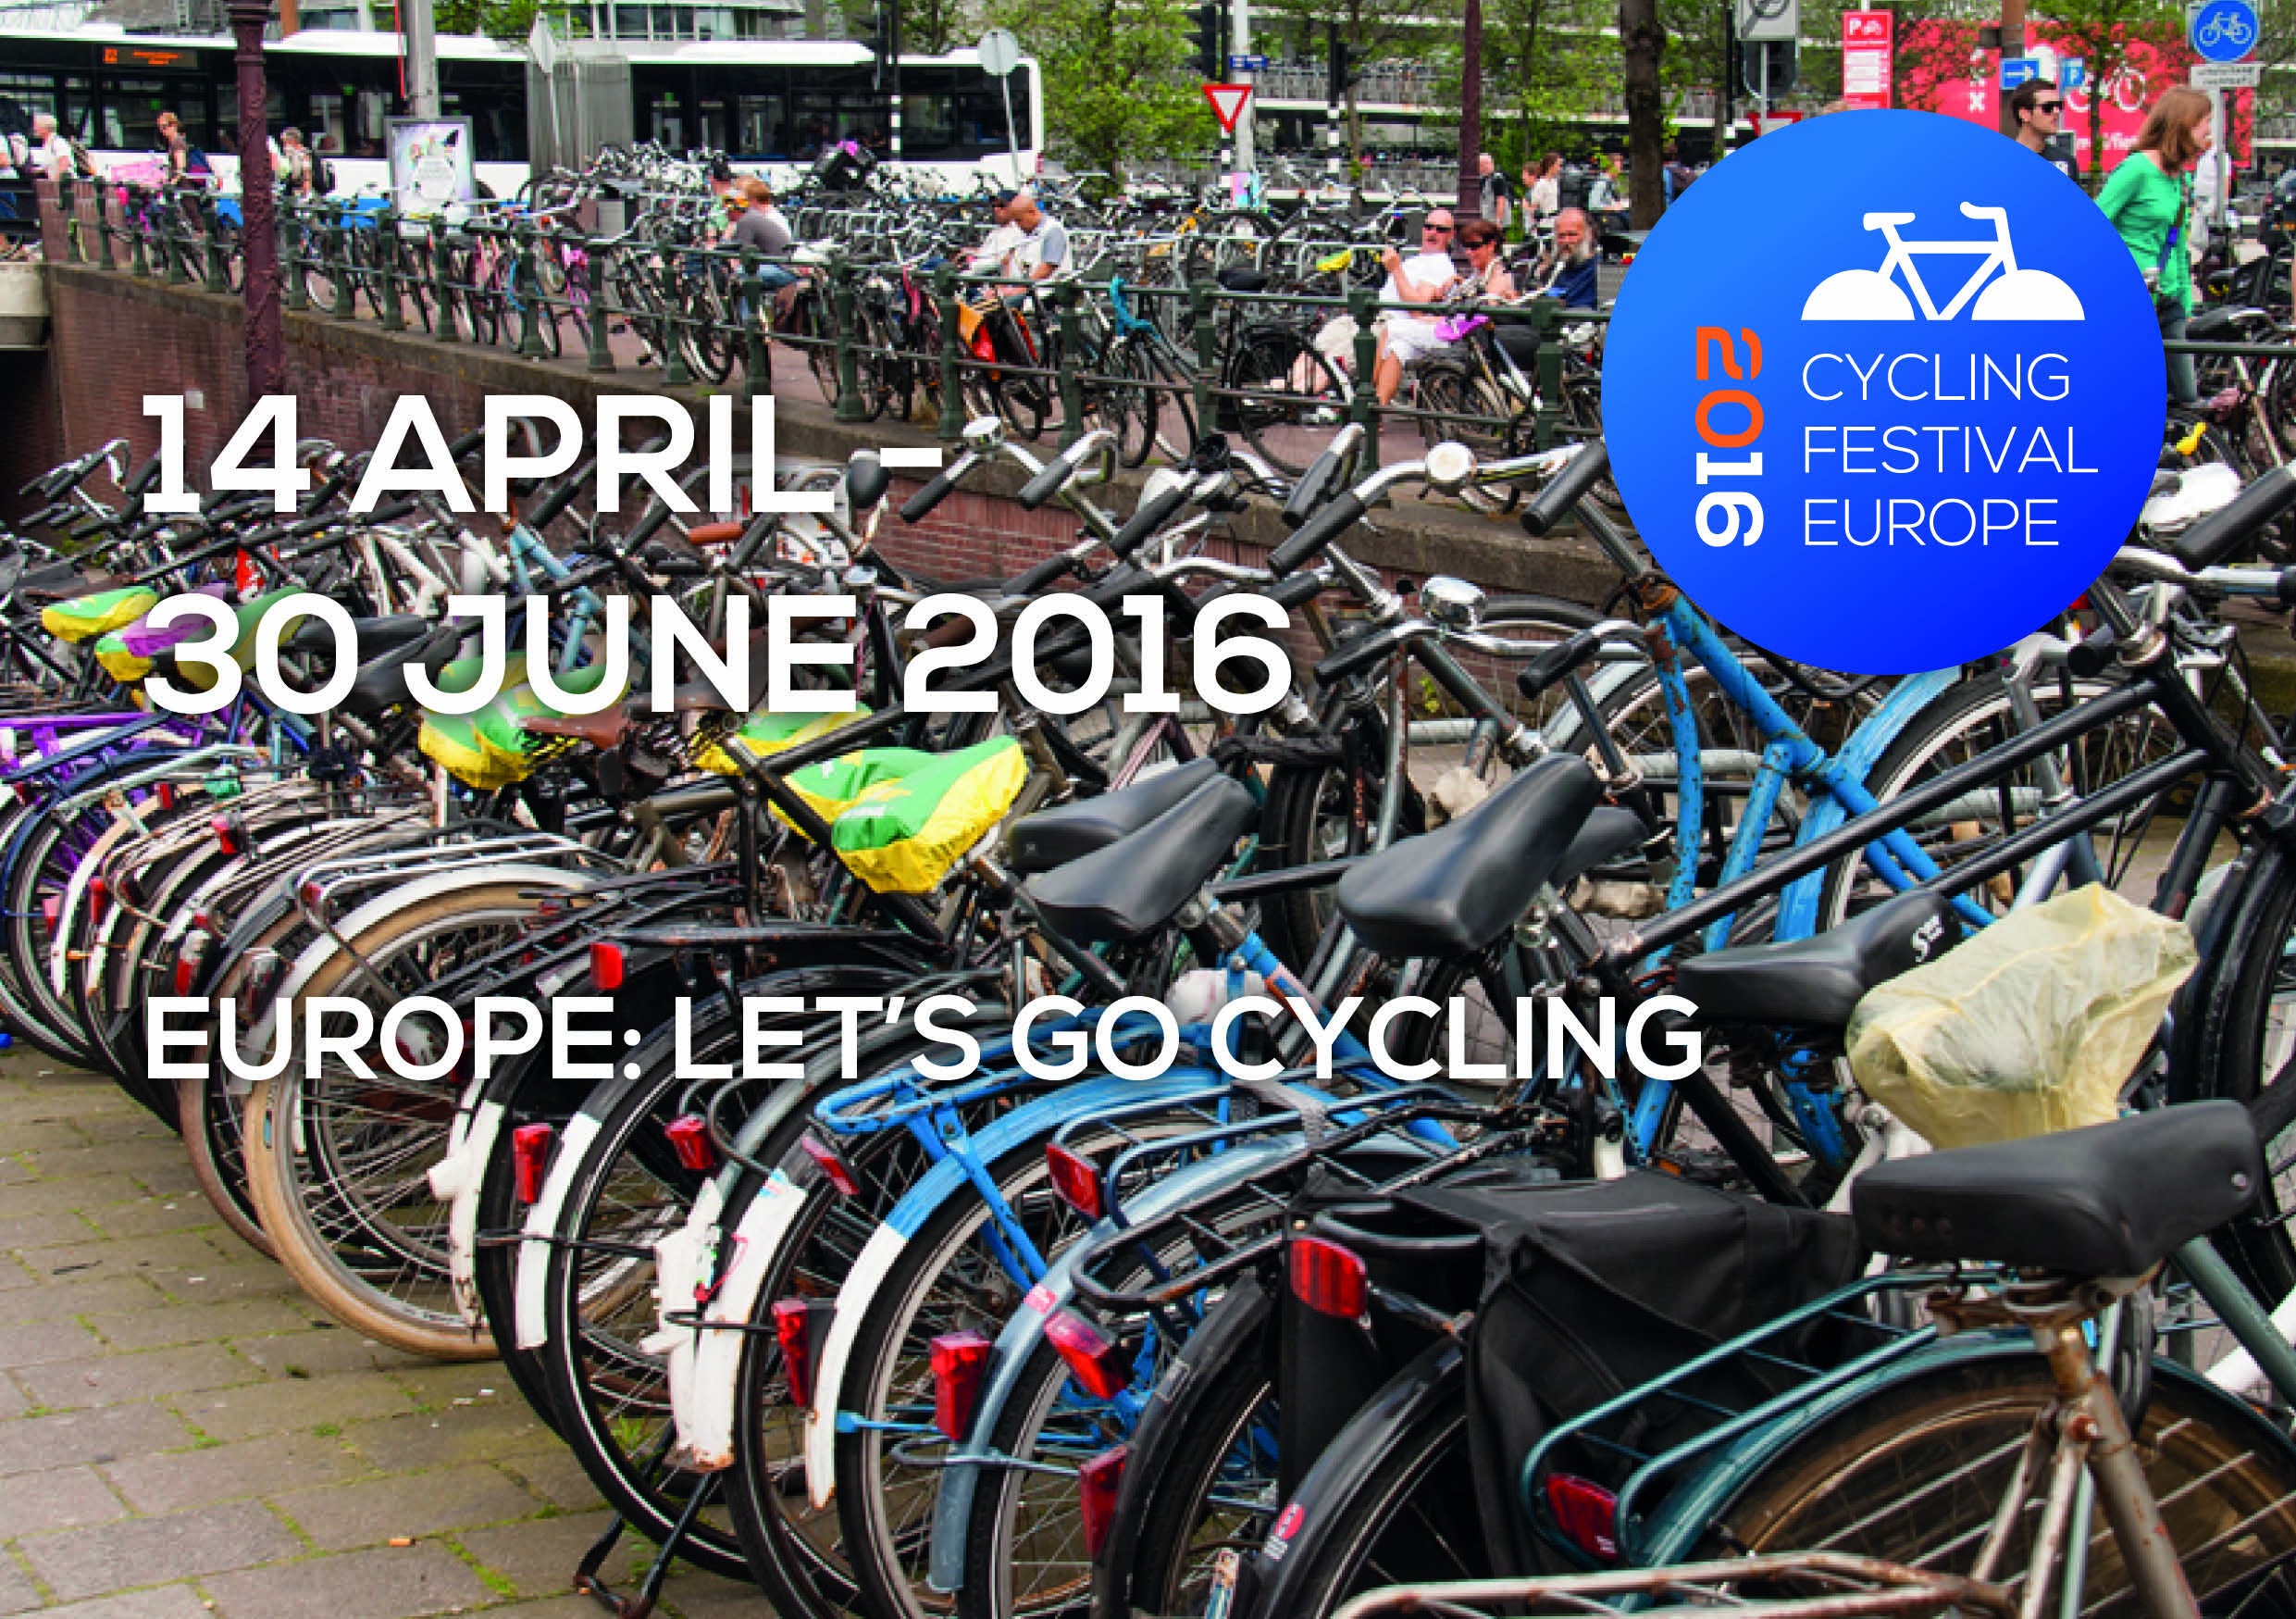 Cycling Festival Europe 2016